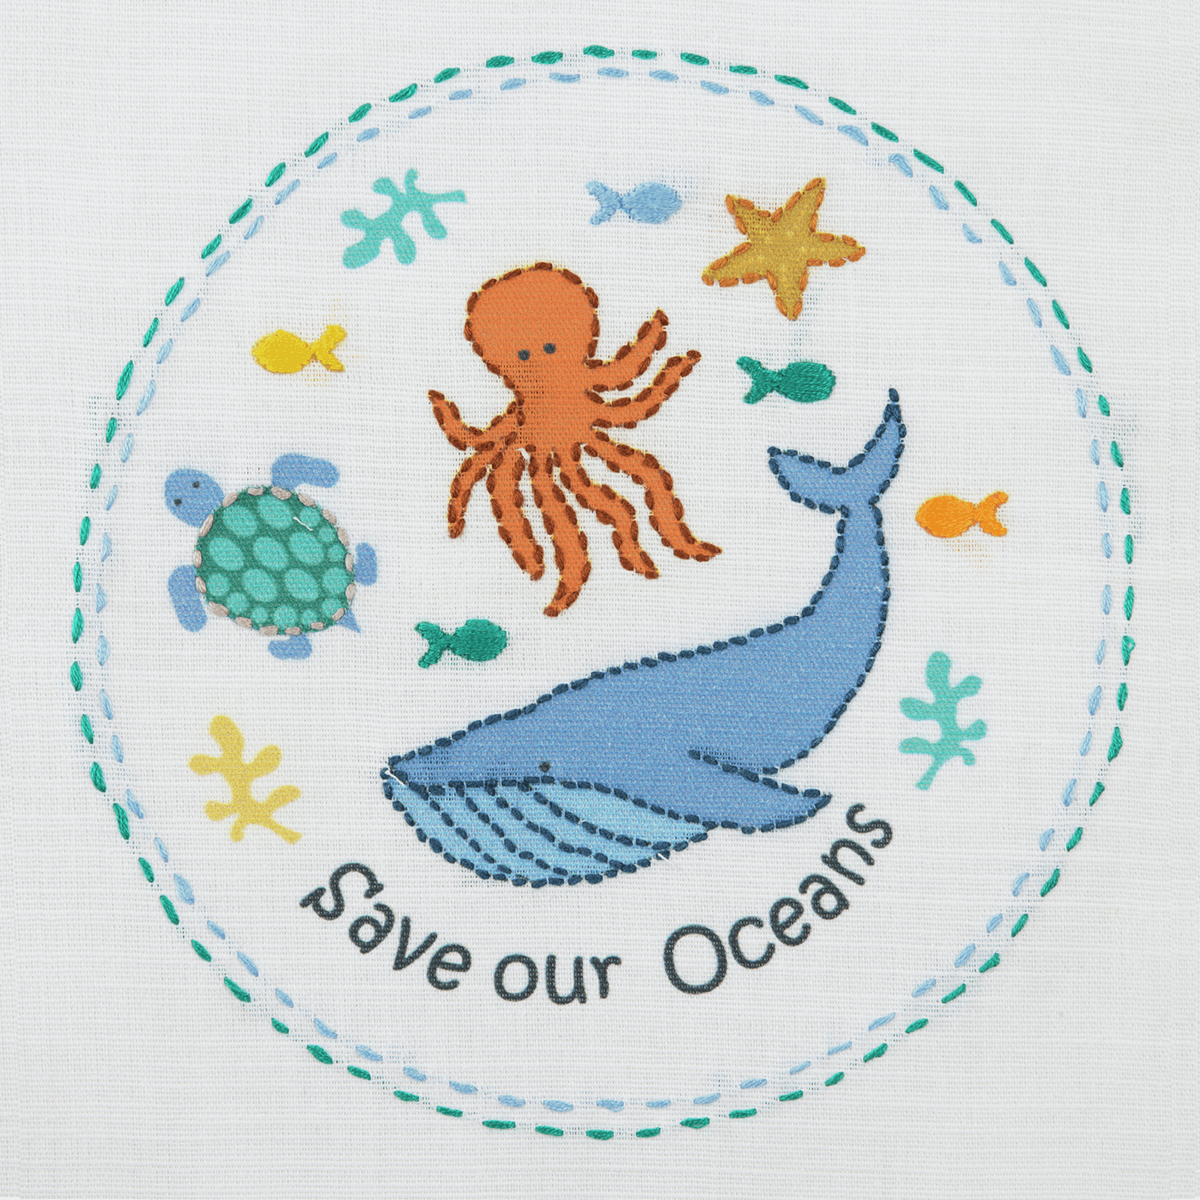 Picture of Embroidery Kit: 1st Kit: Save Our Seas